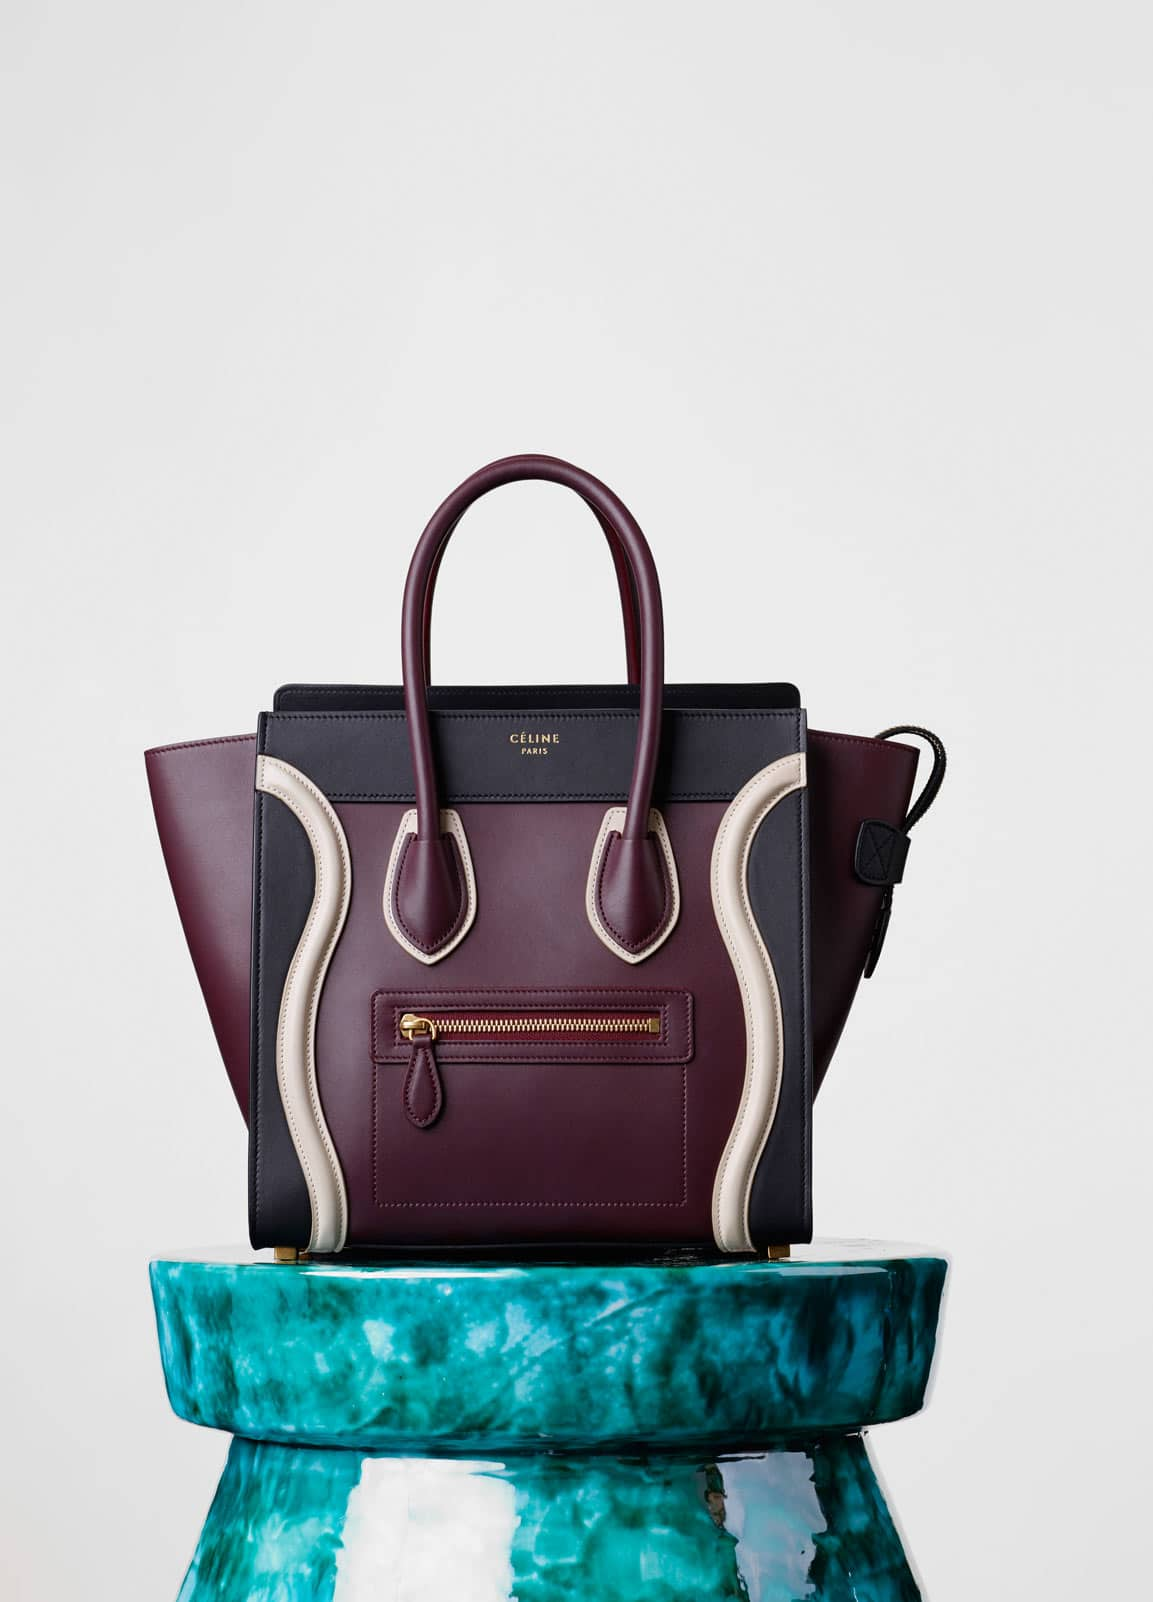 best celine bag replica - Celine Winter 2015 Bag Collection Featuring Subtropical Shades and ...